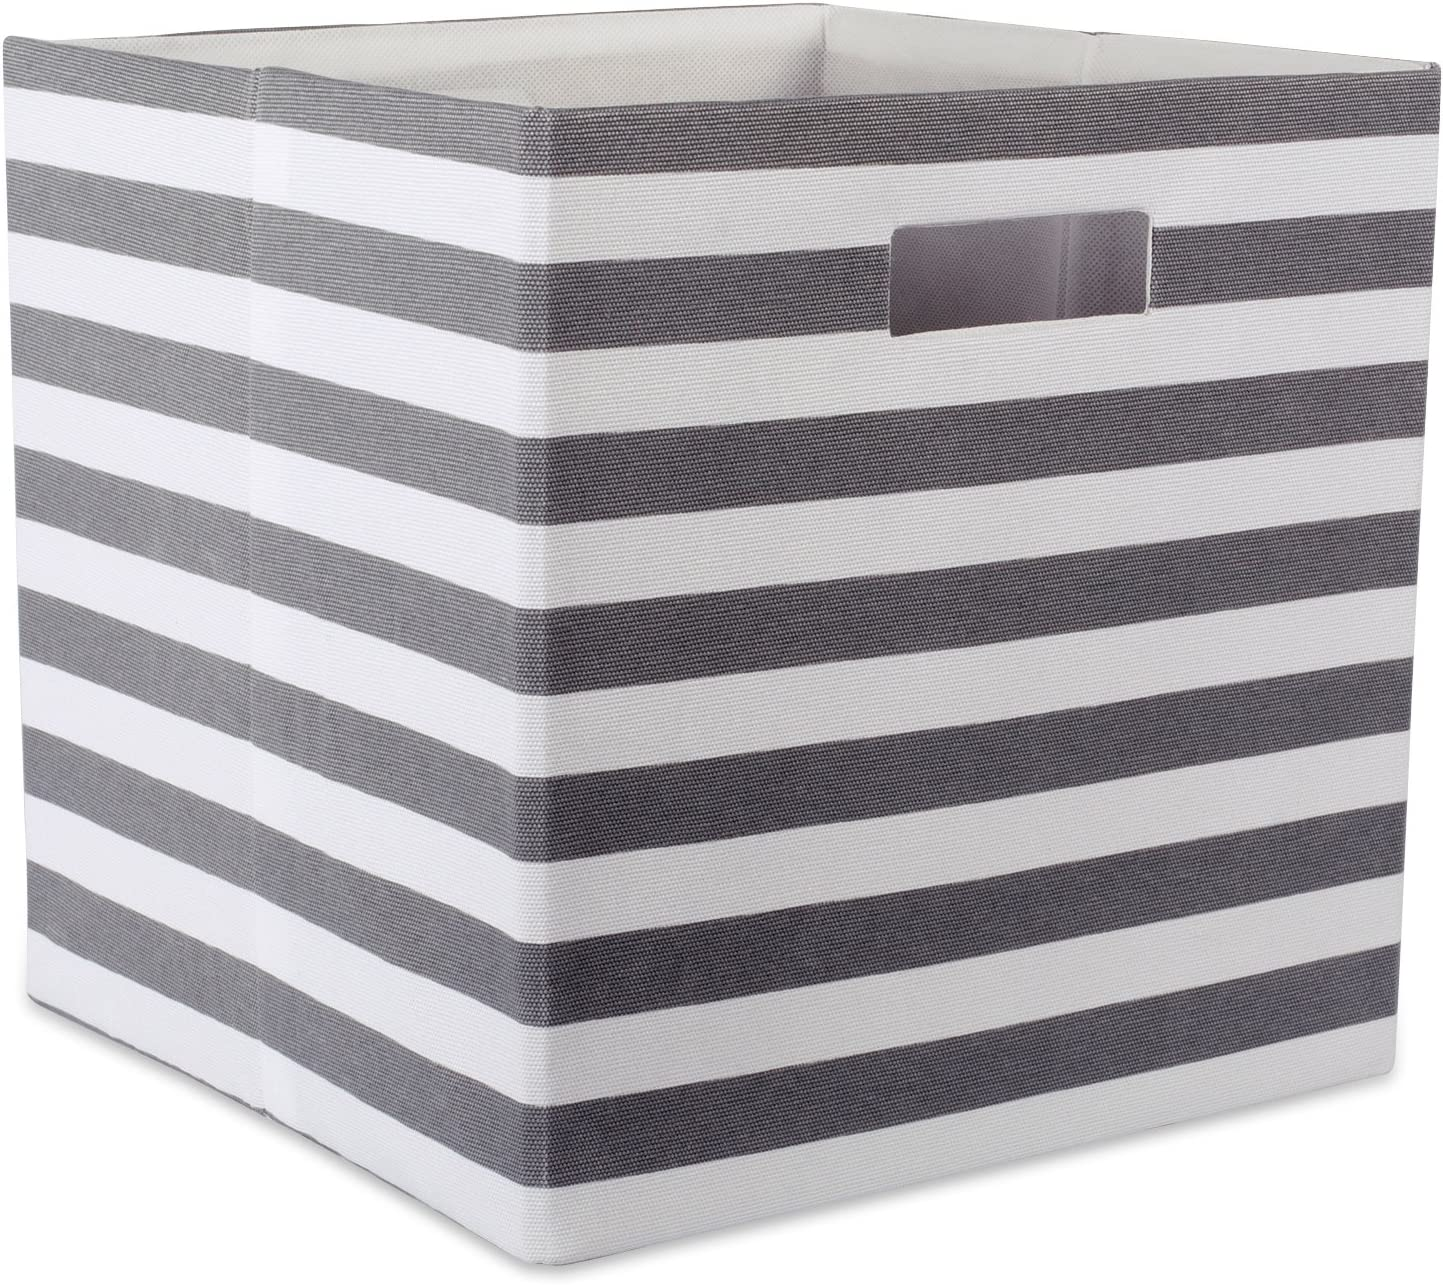 DII Foldable Fabric Storage Container for Nurseries, Offices, Closets, Home Décor, Cube Organizer & Everyday Use,  13 x 13 x 13, Chevron Gray, Large